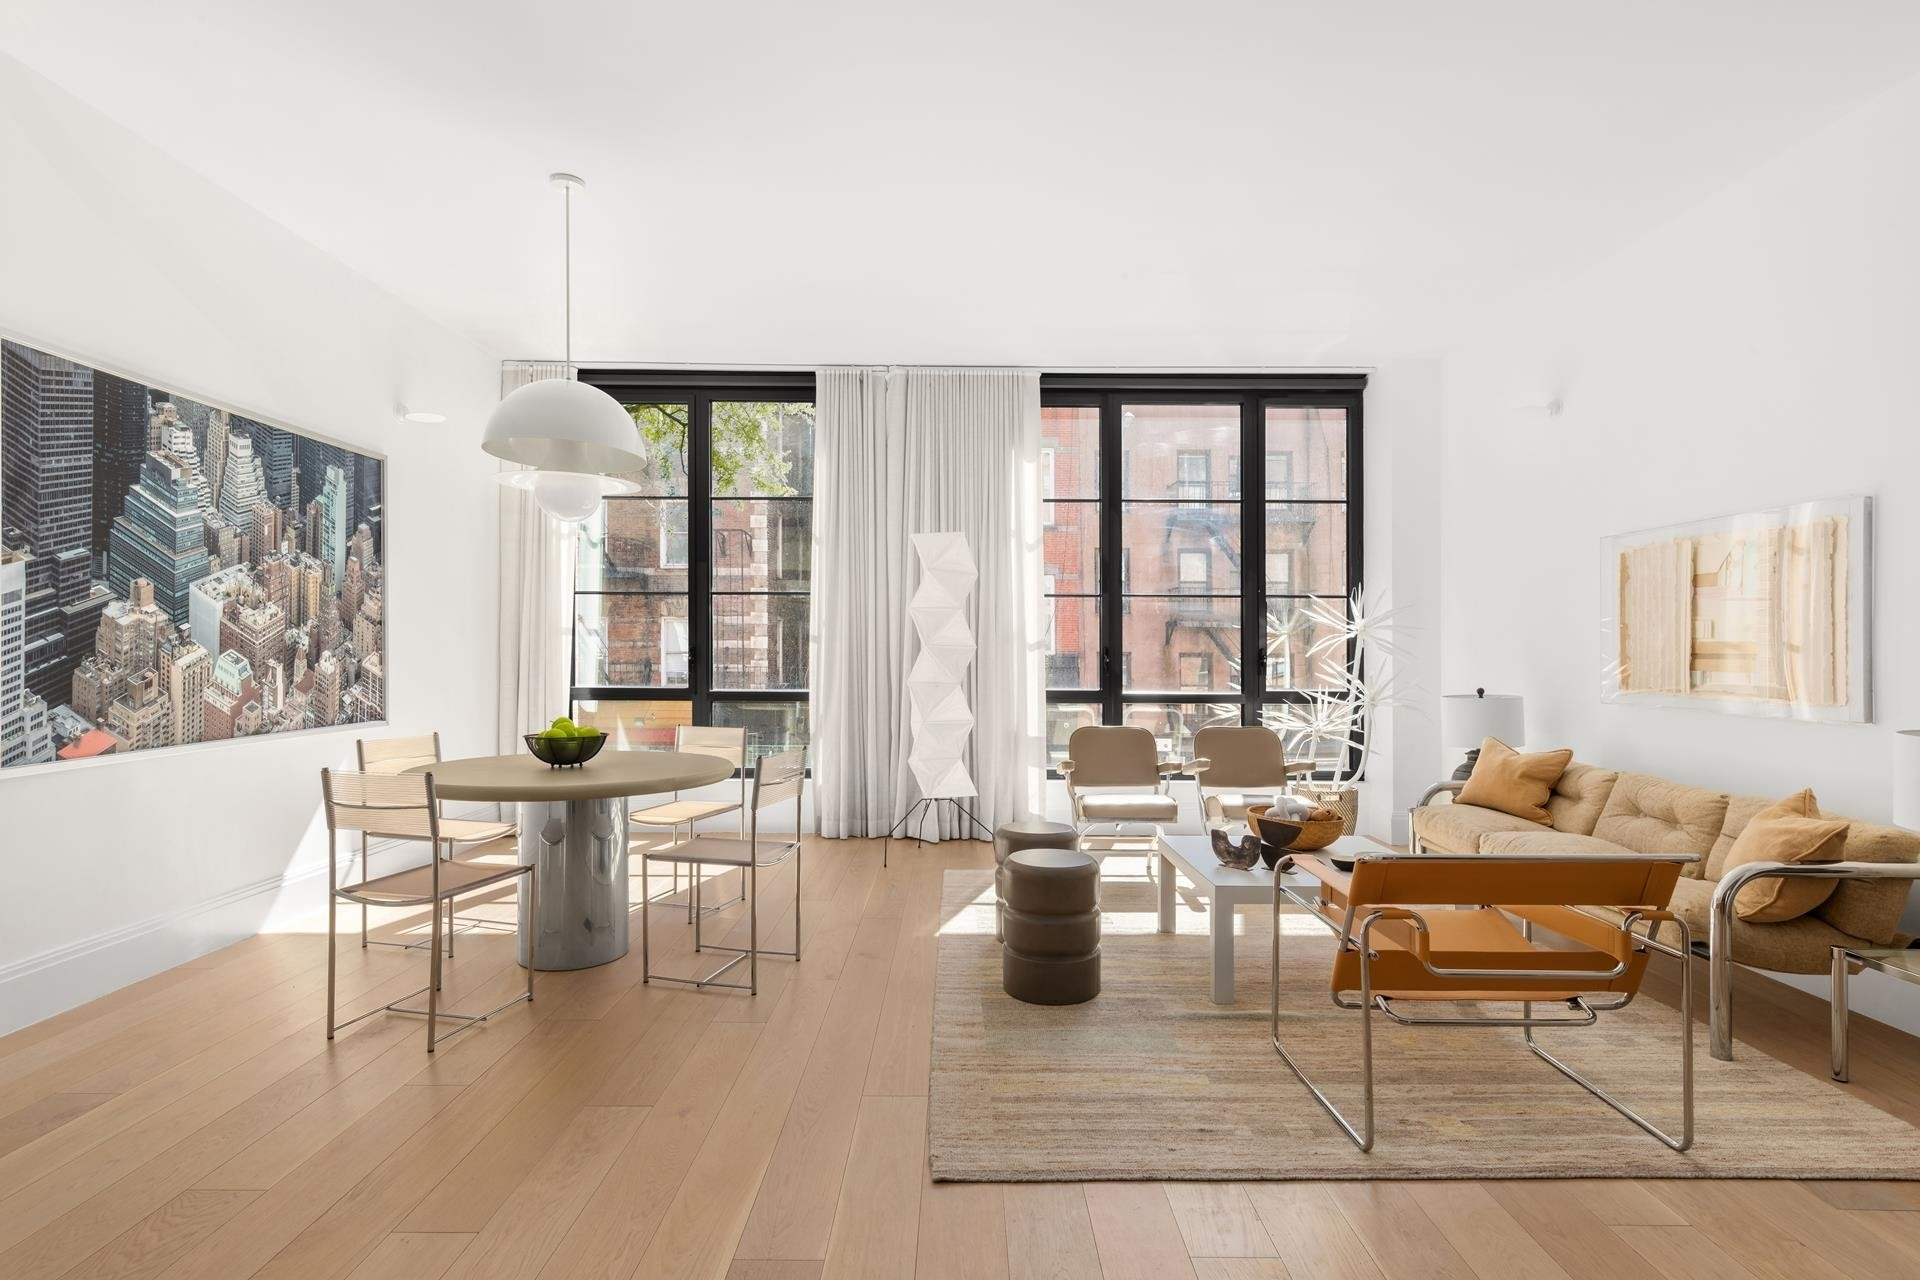 2. Condominiums for Sale at Steiner East Village, 438 E 12TH ST , 3Q East Village, New York, NY 10009